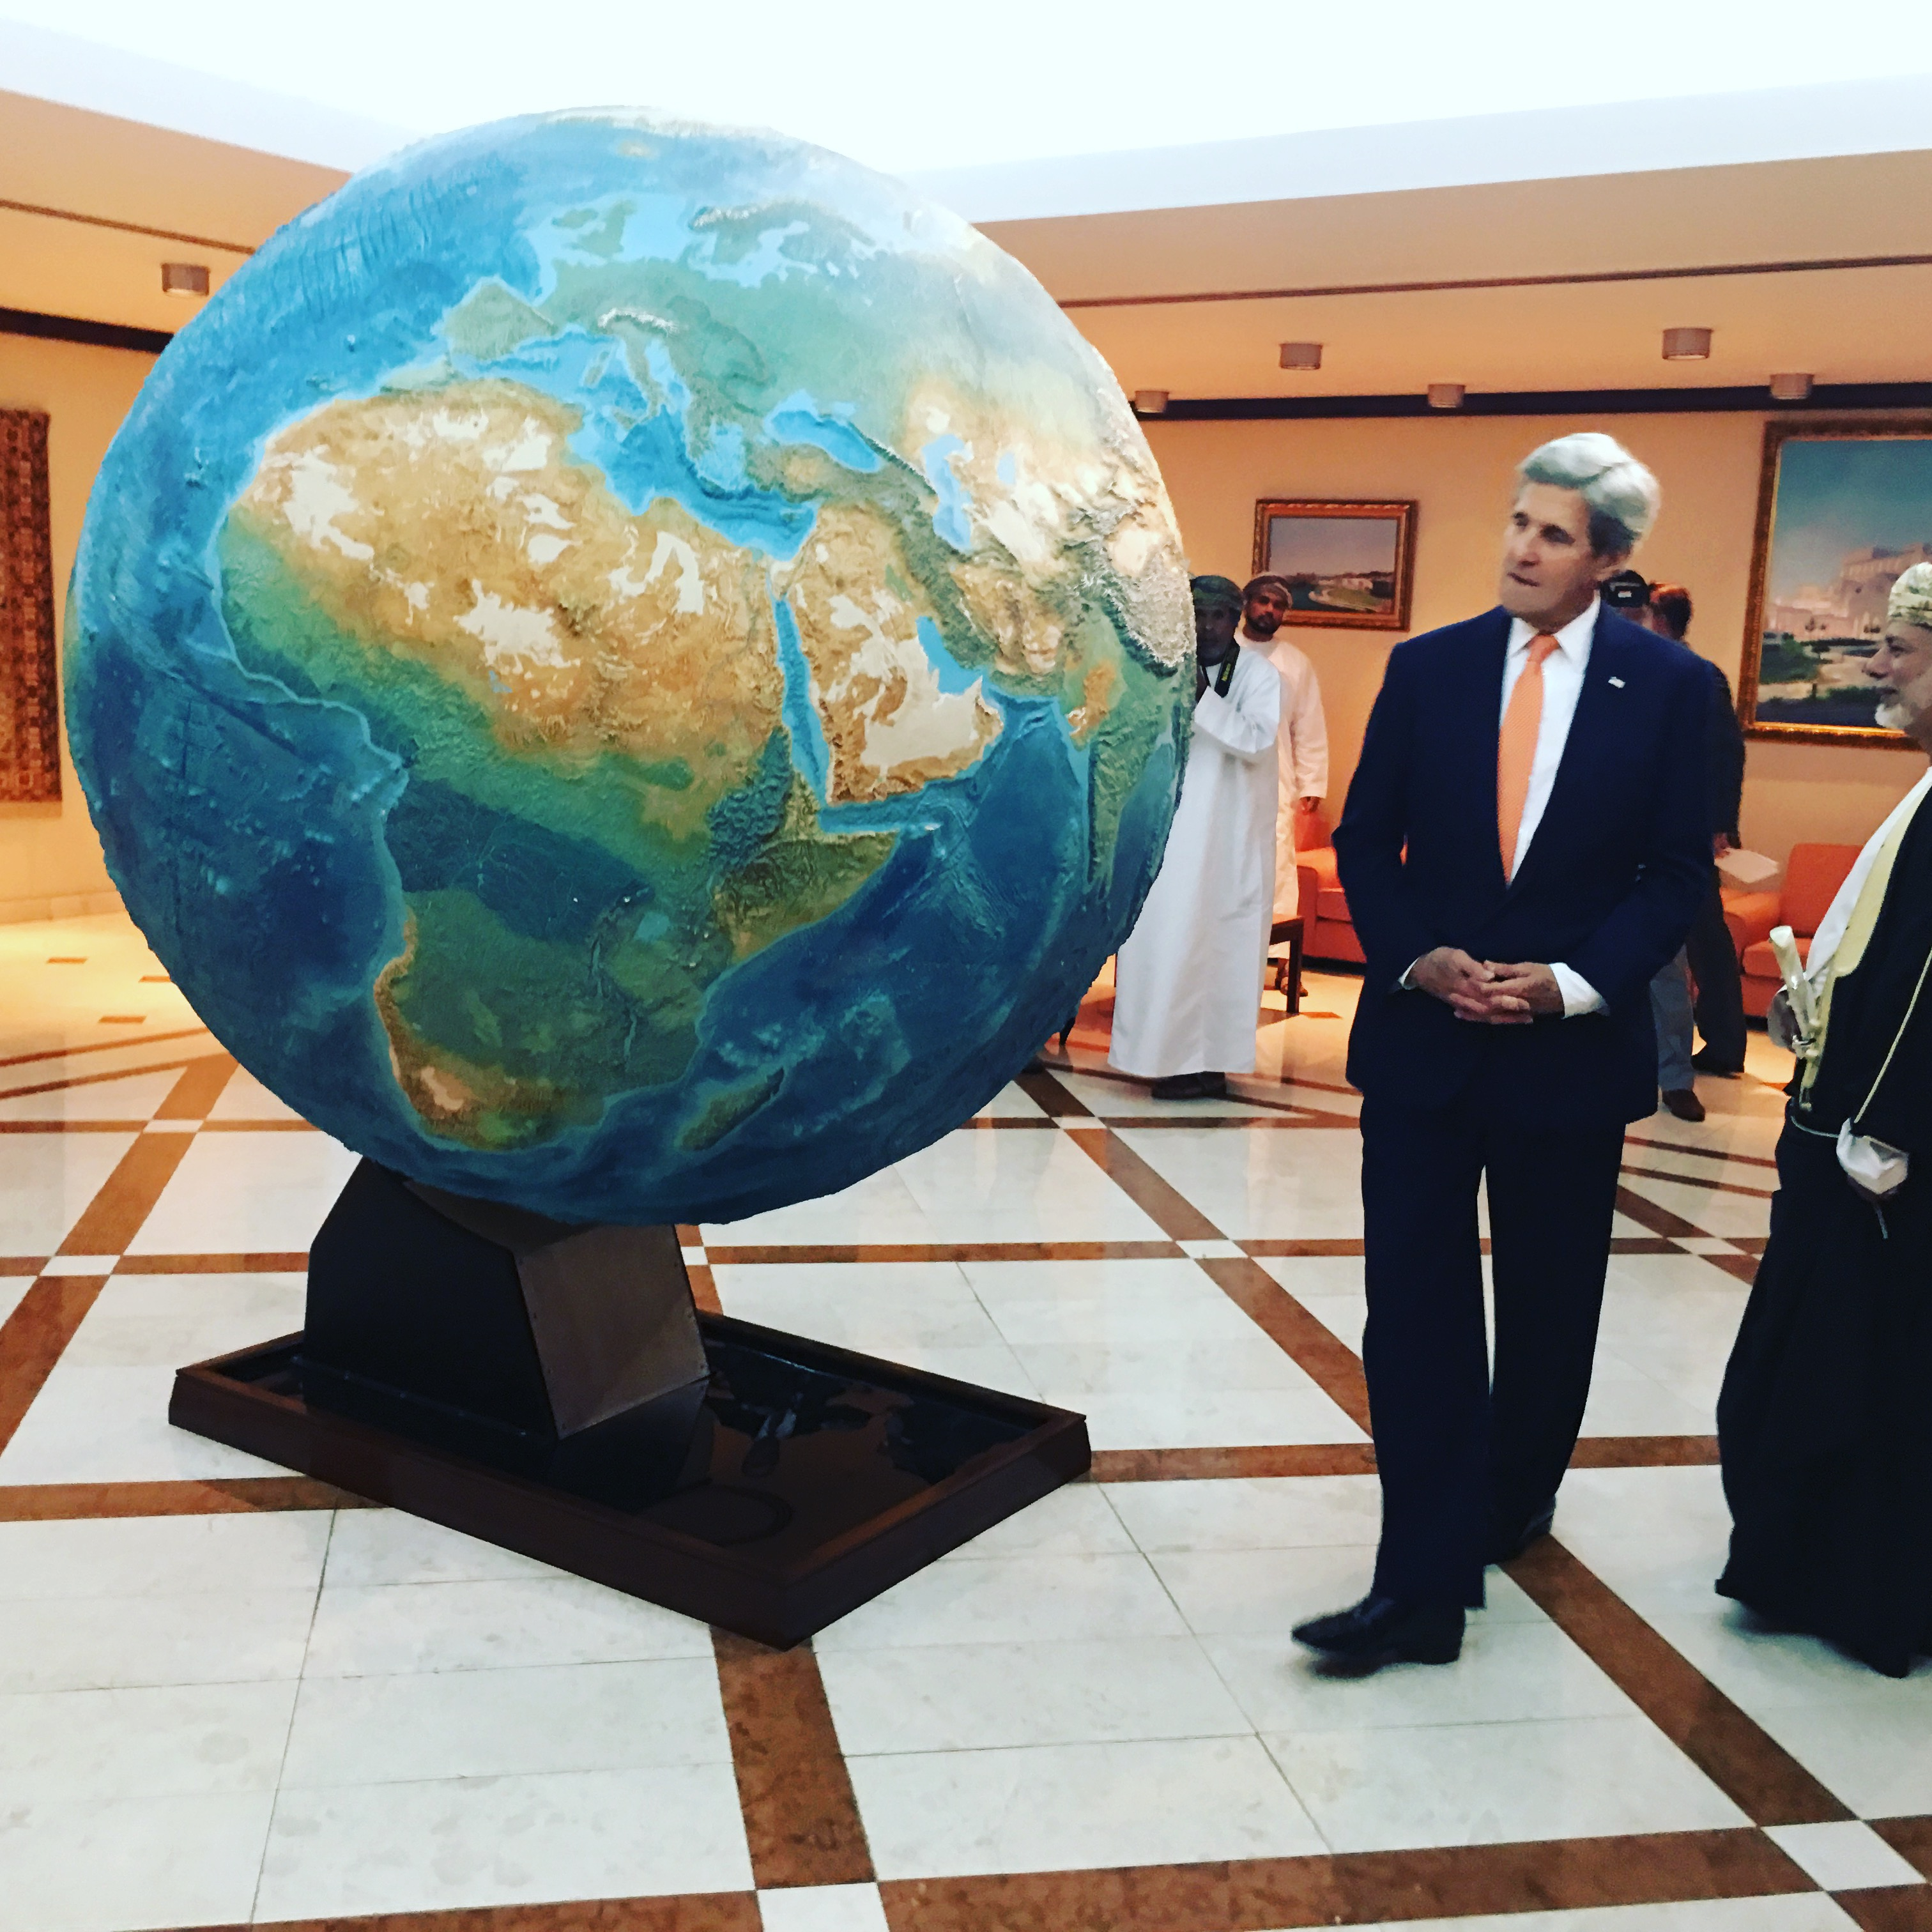 Secretary of State John Kerry admires a giant globe in the lobby of Oman's Ministry of Foreign Affairs prior to talks about the war in neighboring Yemen, in Muscat, Oman, Nov. 14, 2016. (S. Herman/VOA)